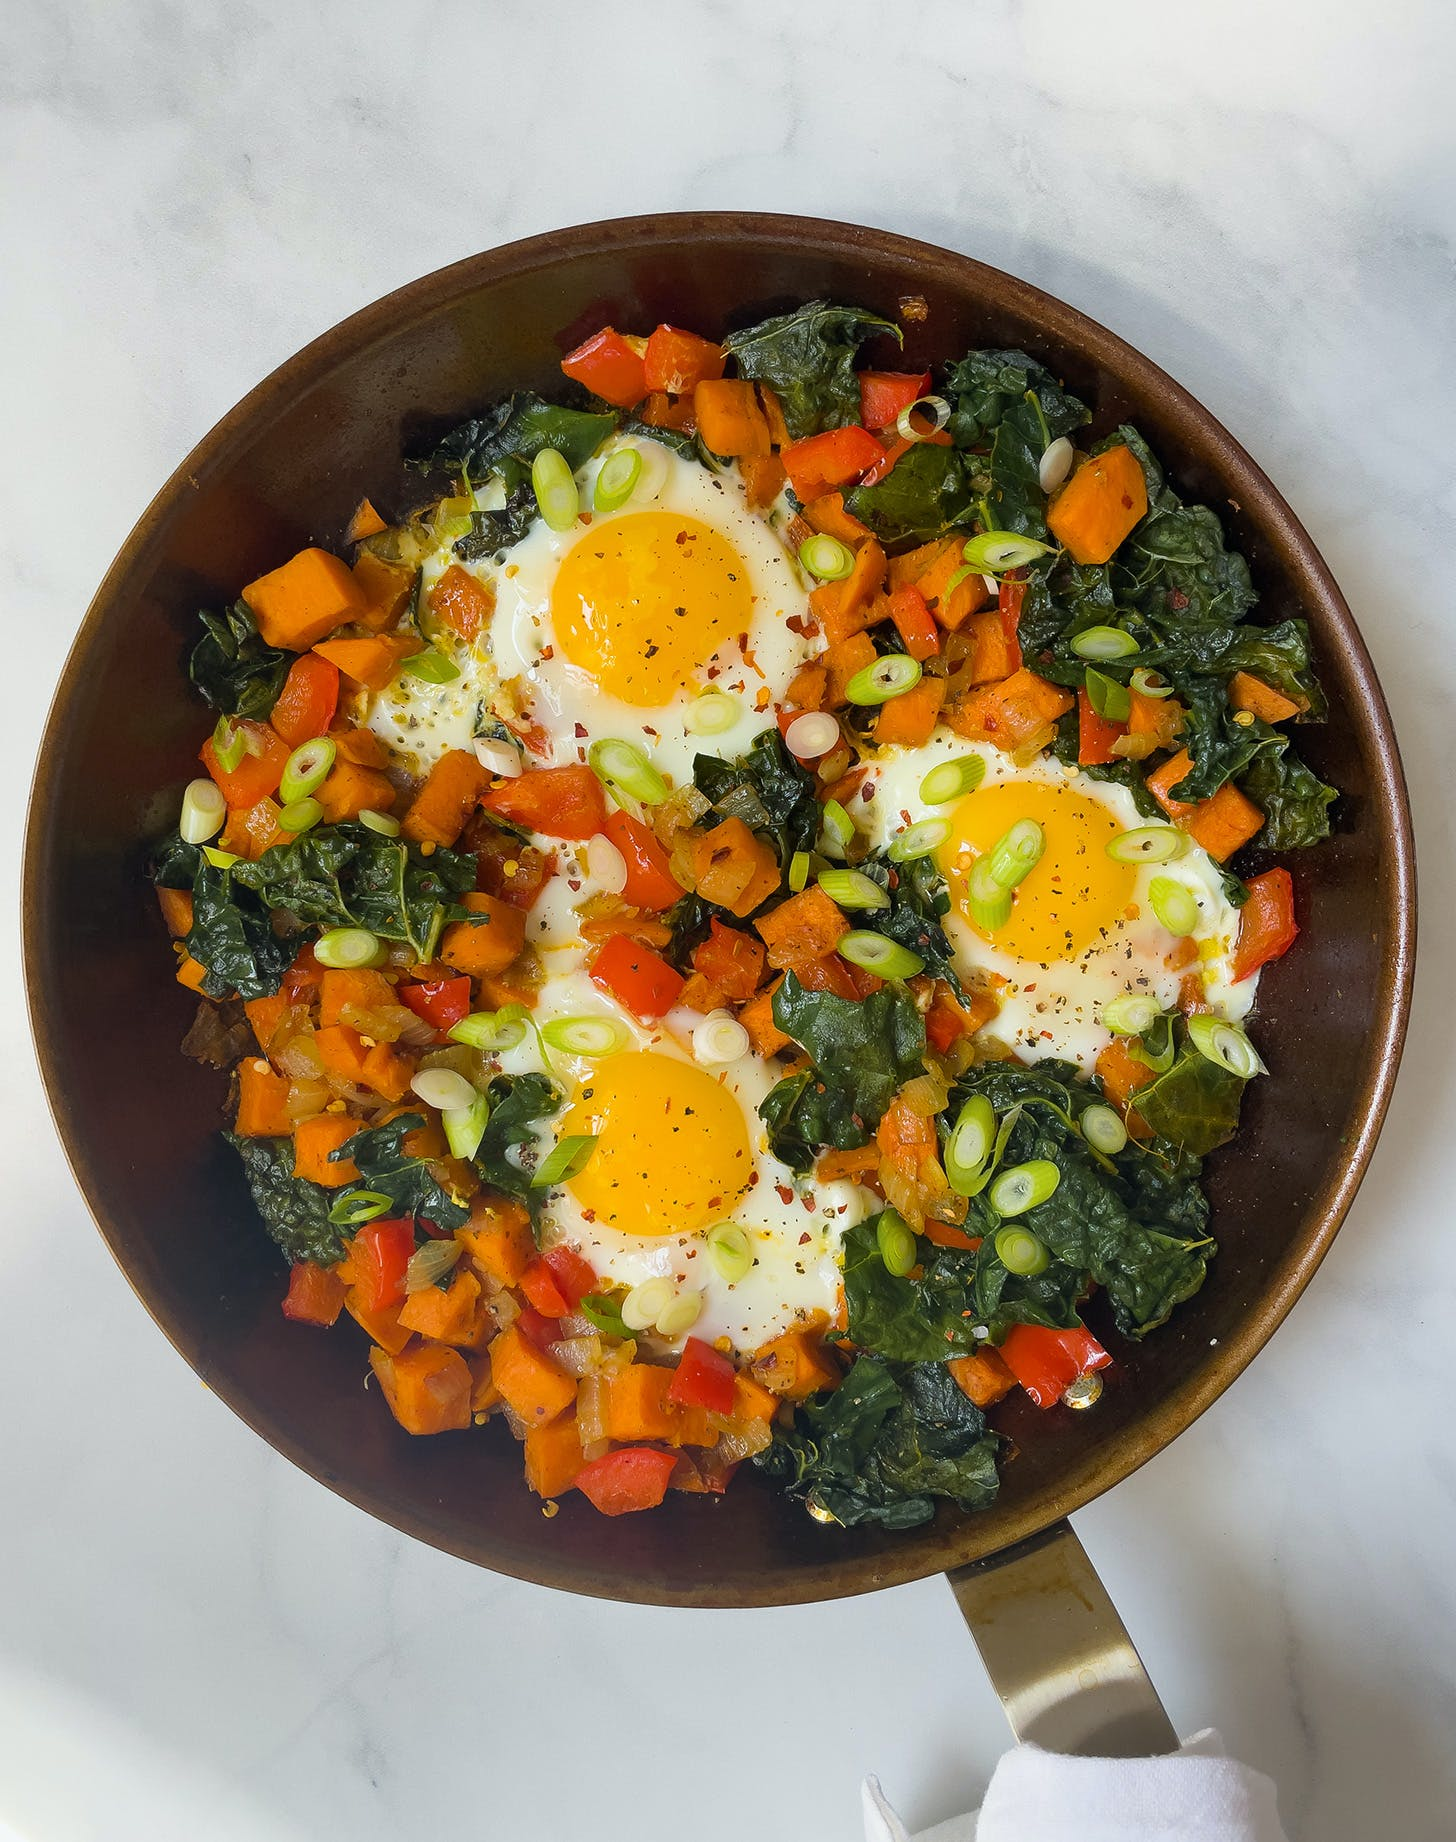 30-Minute Breakfast Hash with Kale and Sweet Potatoes